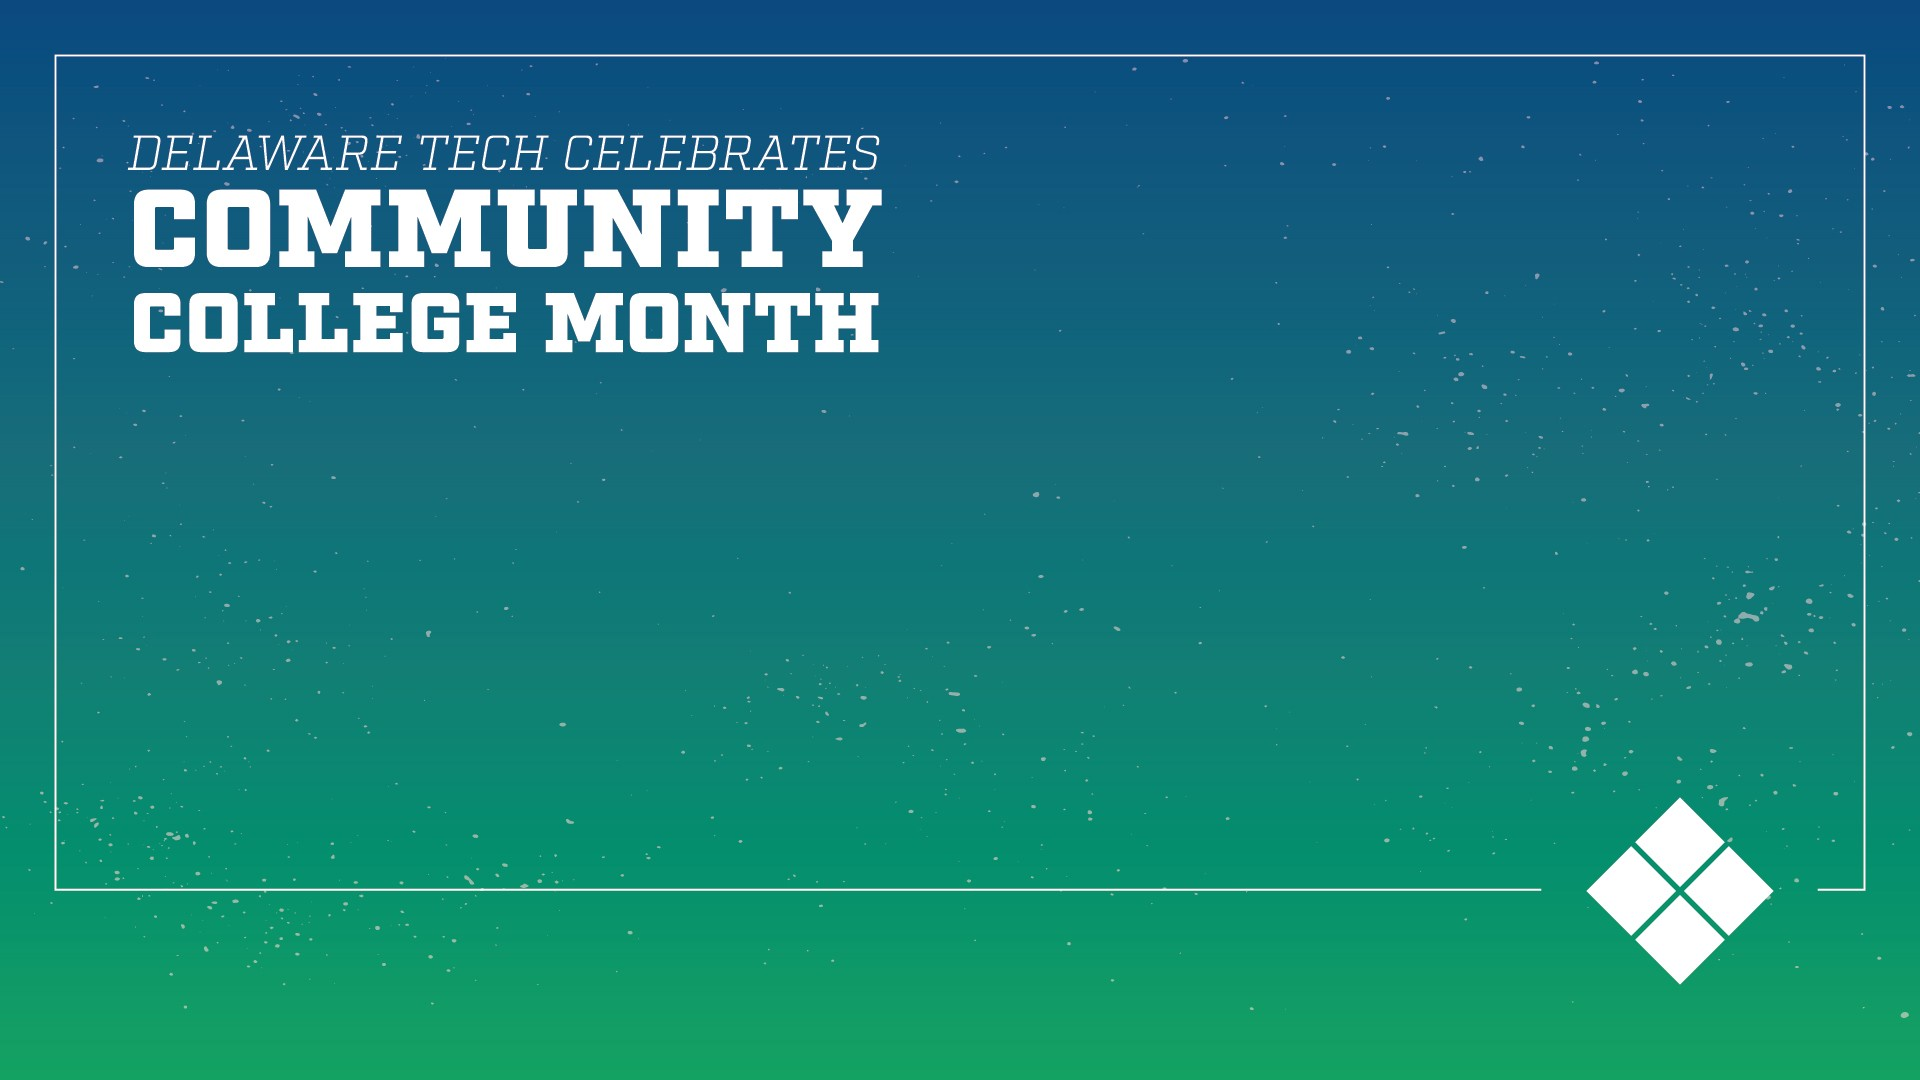 Community College Month Zoom Background Image that says Delaware Tech Celebrates Community College Month